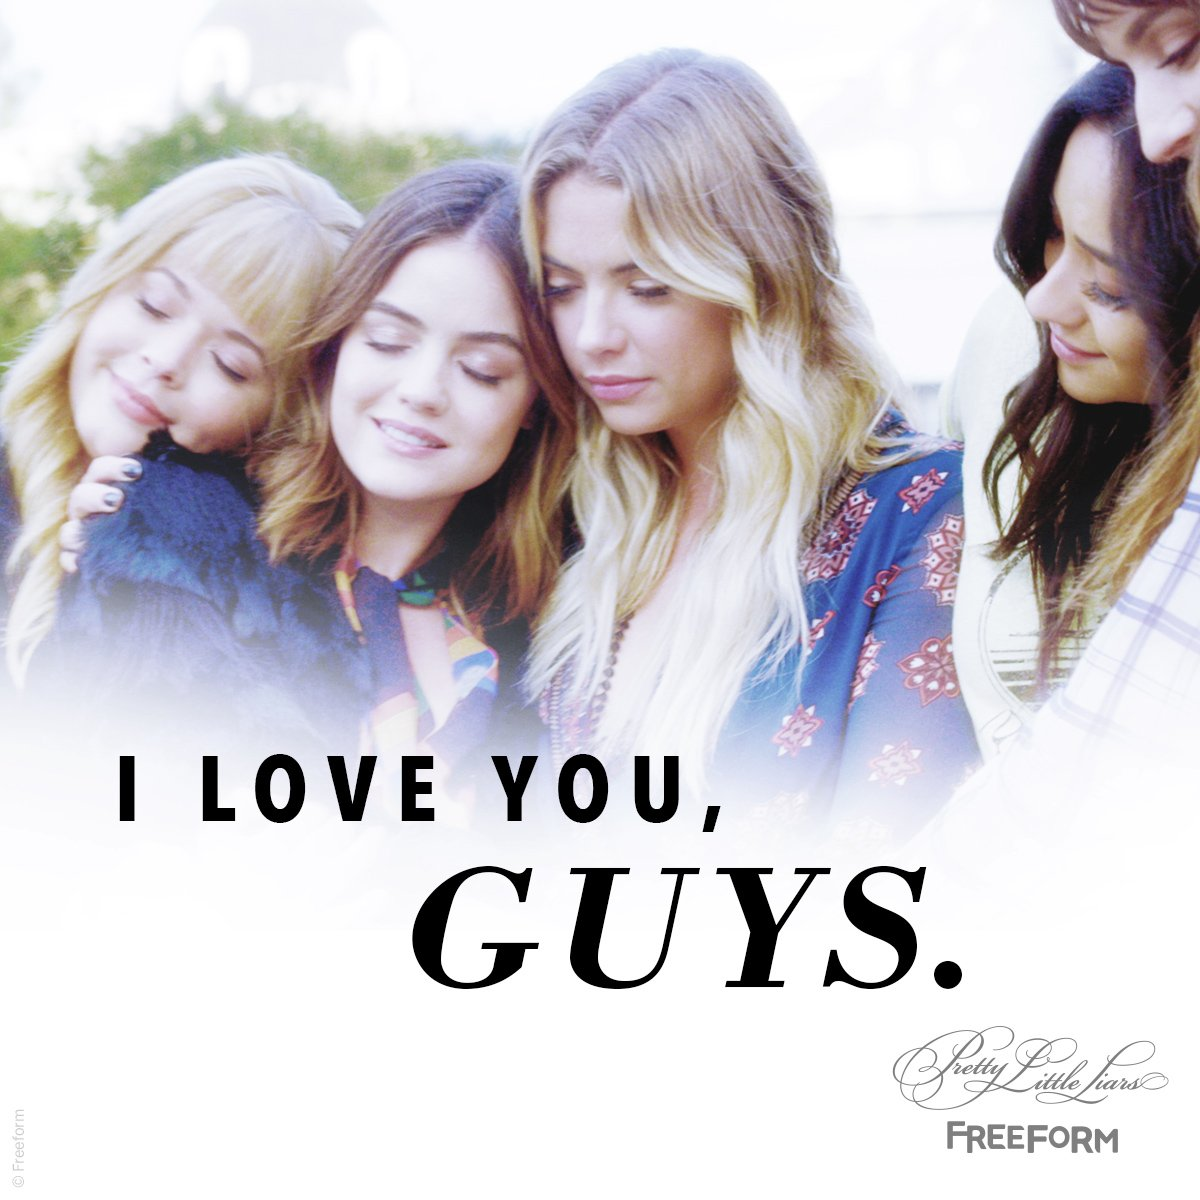 #PLL fam, tonight was for you. All of our love, always. 💖 #PLLGameOver https://t.co/MQBcPIizeB